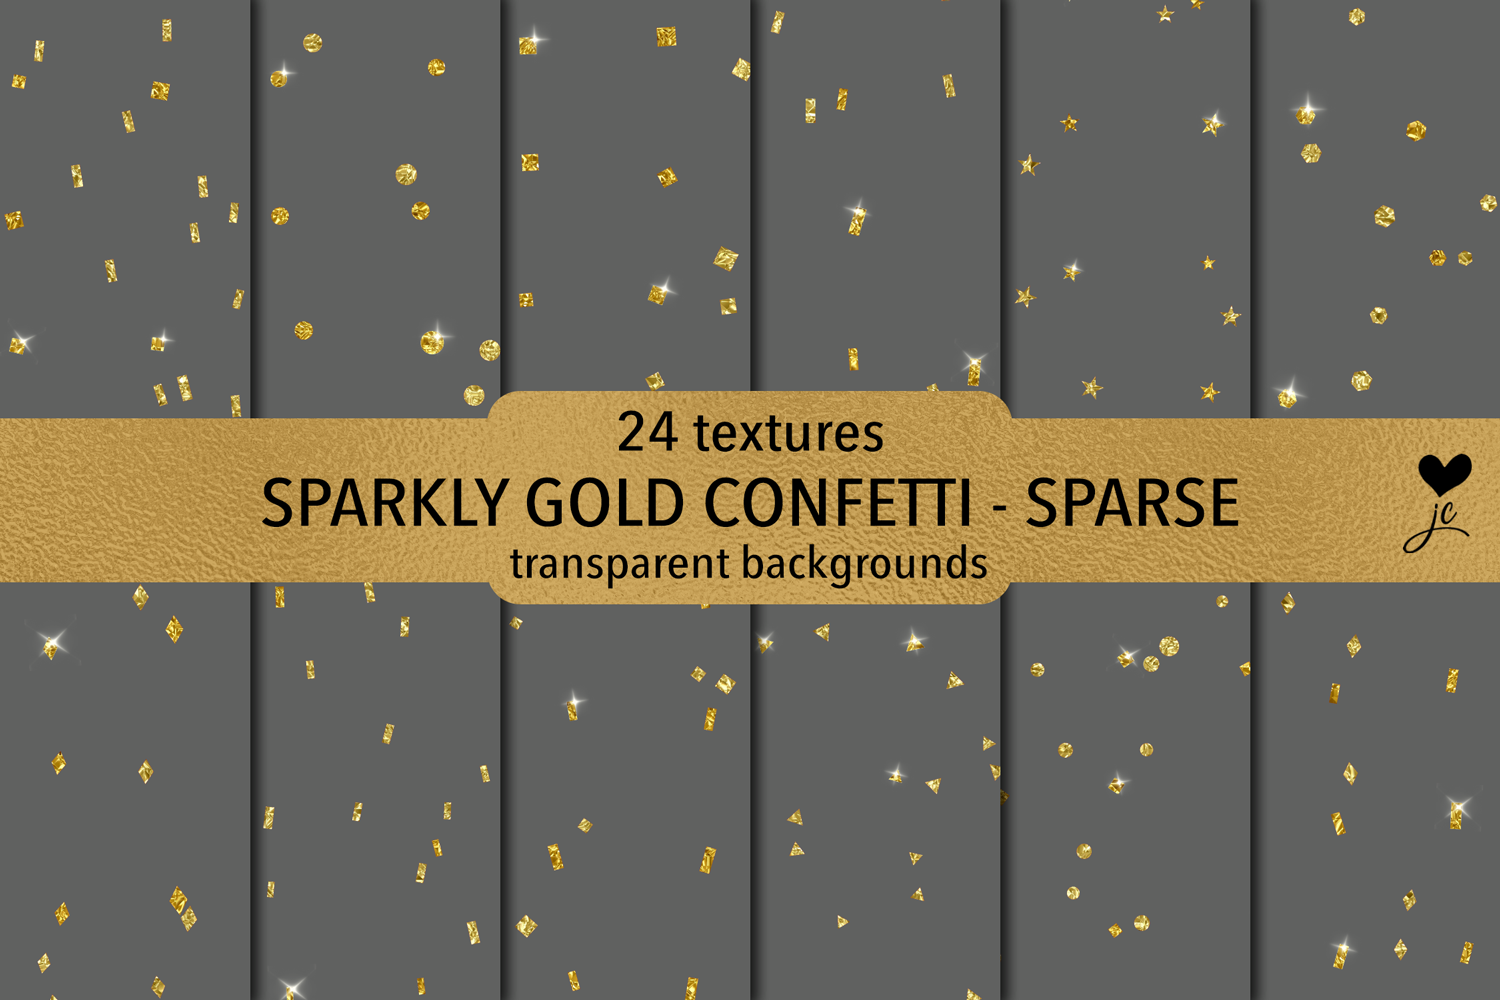 Sparkly Gold Confetti (Sparse) - transparent backgrounds example image 1